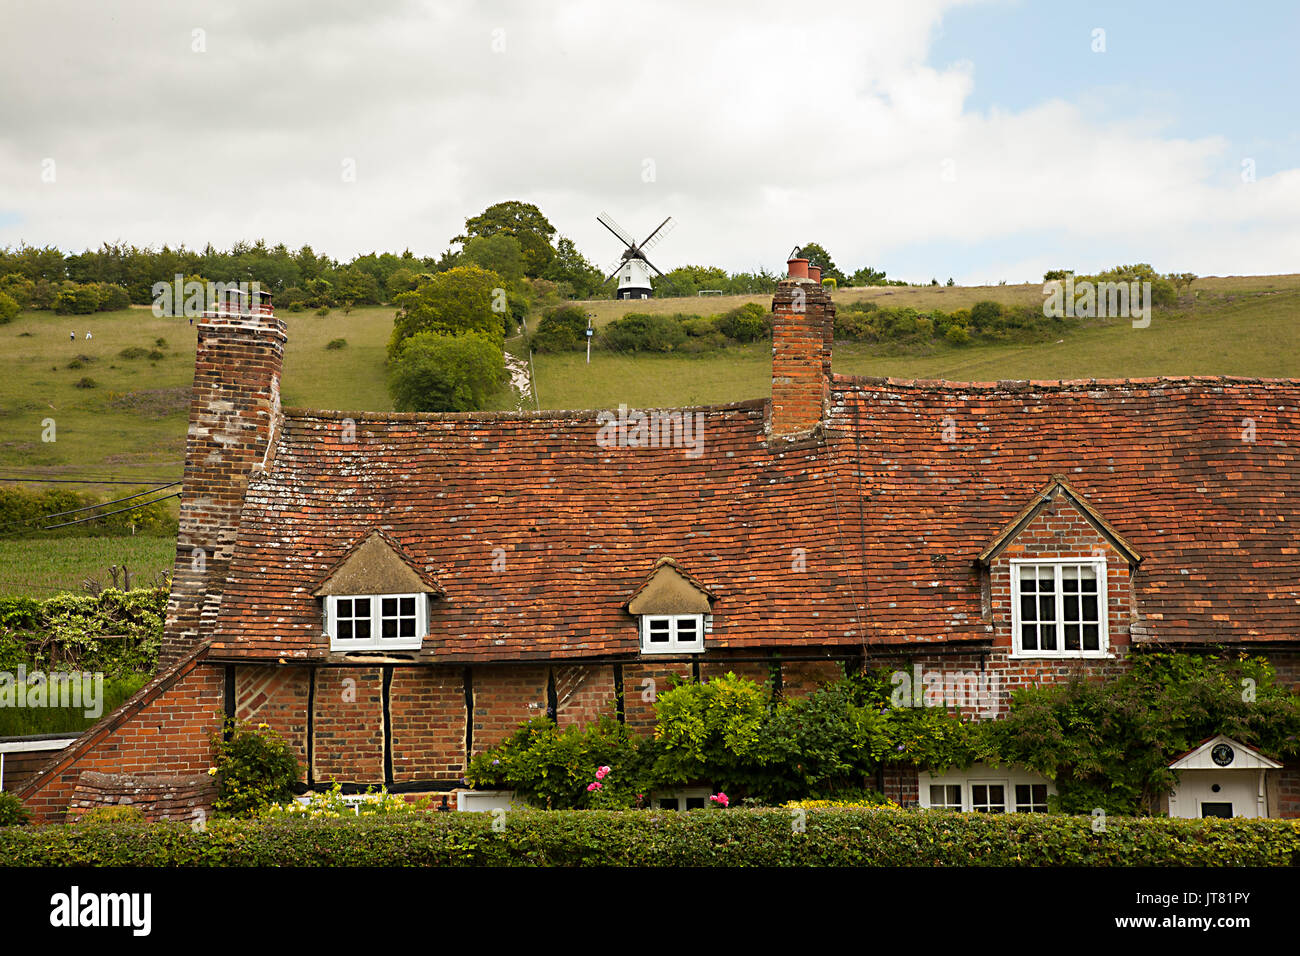 Turville in the English Chiltern hills with a view over country cottages towards Cobstone windmill the setting for Chitty Chitty Bang Bang - Stock Image